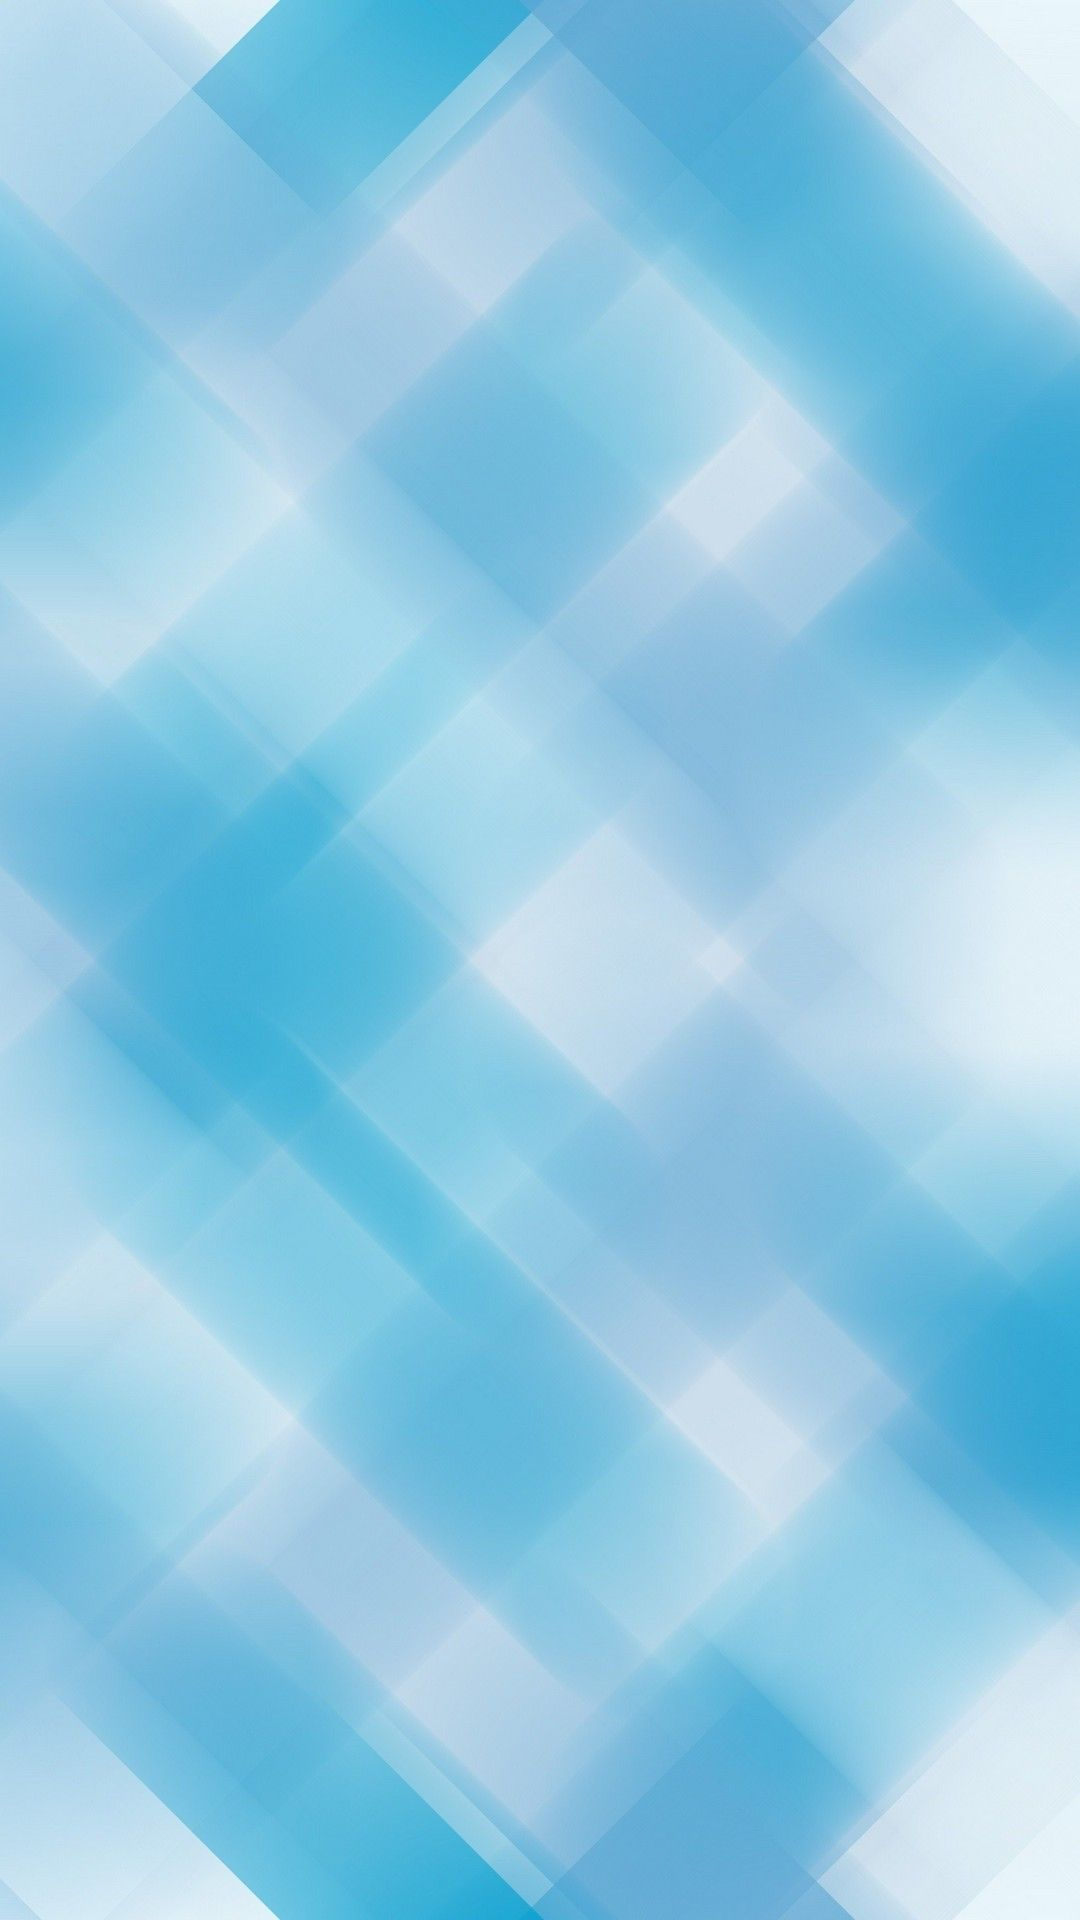 Cute Blue Background Image Blue And White Wallpaper Blue Background Images Wallpaper Design Pattern